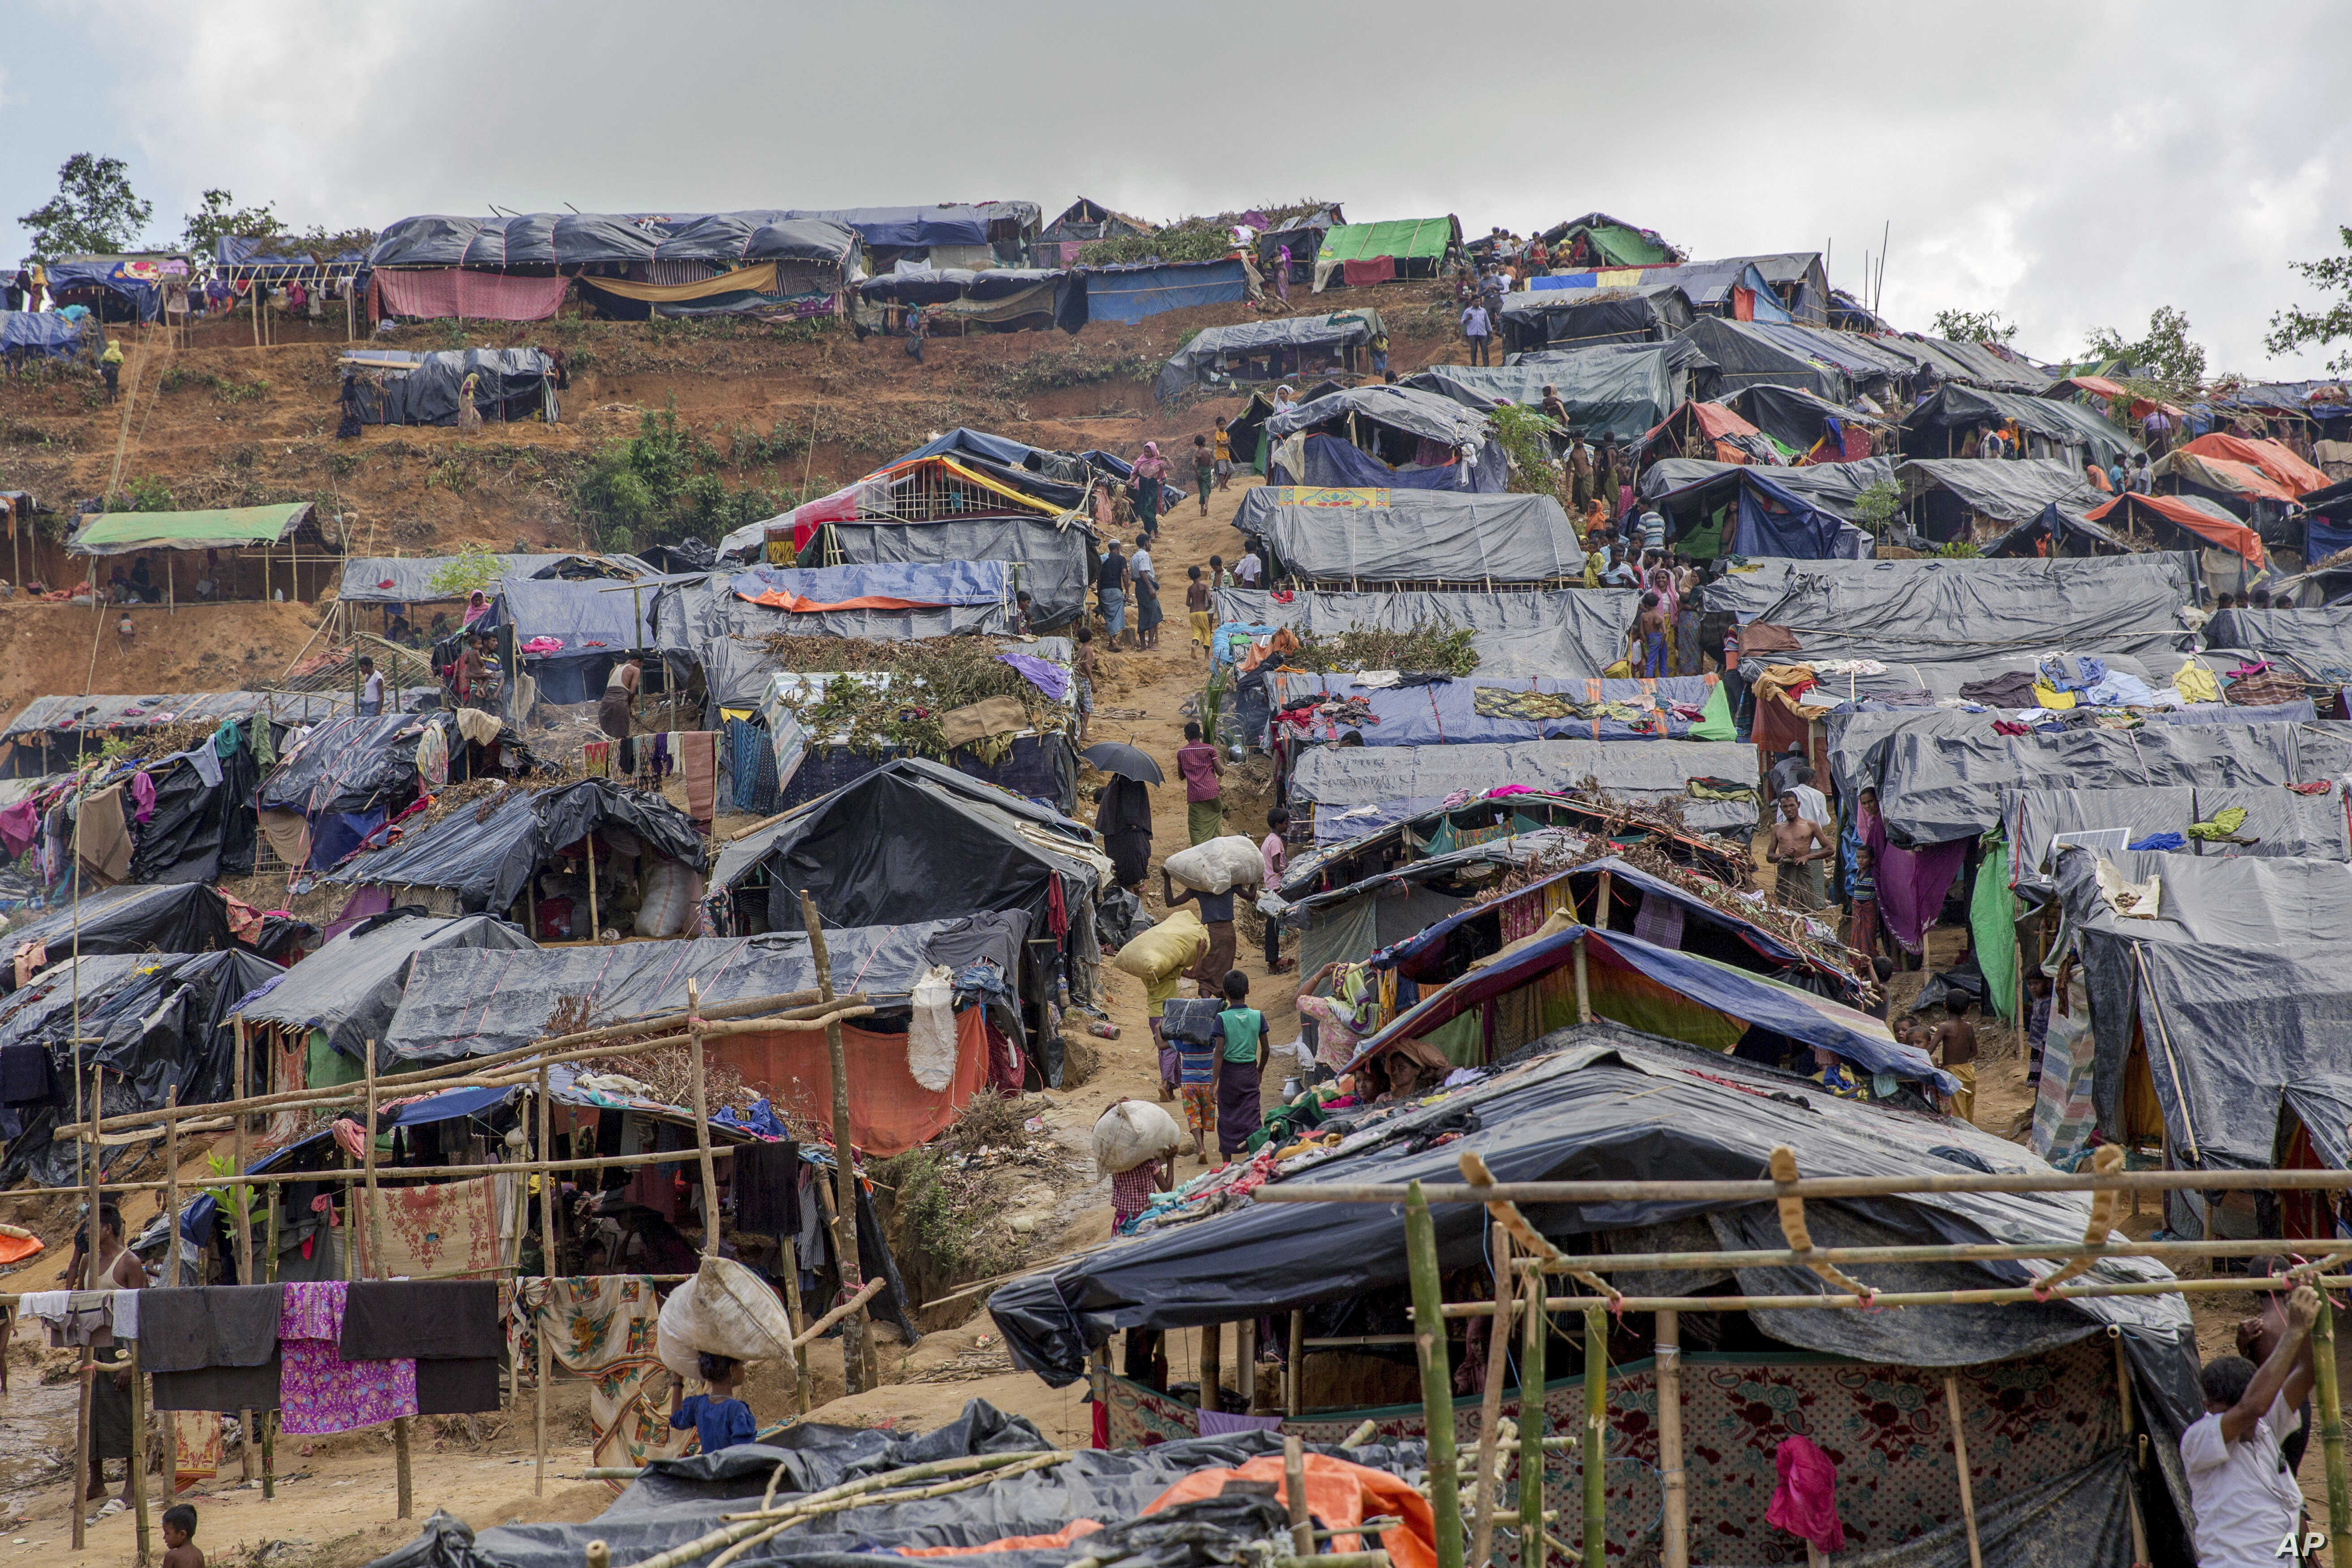 Newly set up tents cover a hillock at a refugee camp for Rohingya Muslims, who crossed over from Myanmar into Bangladesh, in Taiy Khali, Bangladesh, Friday, Sept. 22, 2017.